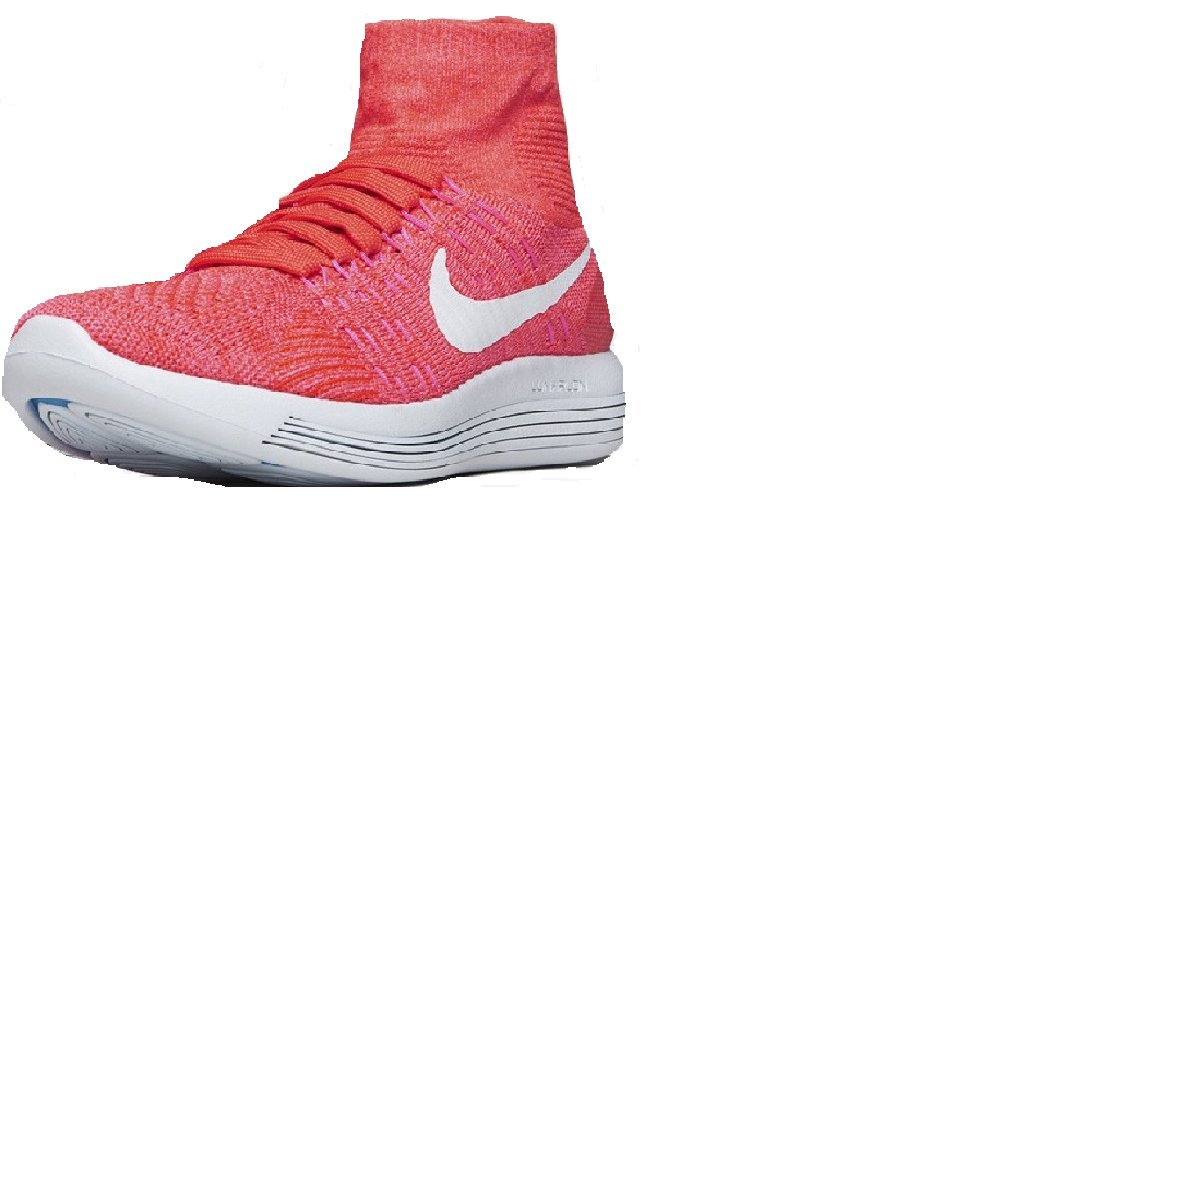 a30d912751d8b Galleon - Nike Womens Lunarepic Flyknit Running Shoes (7 B(M) US ...